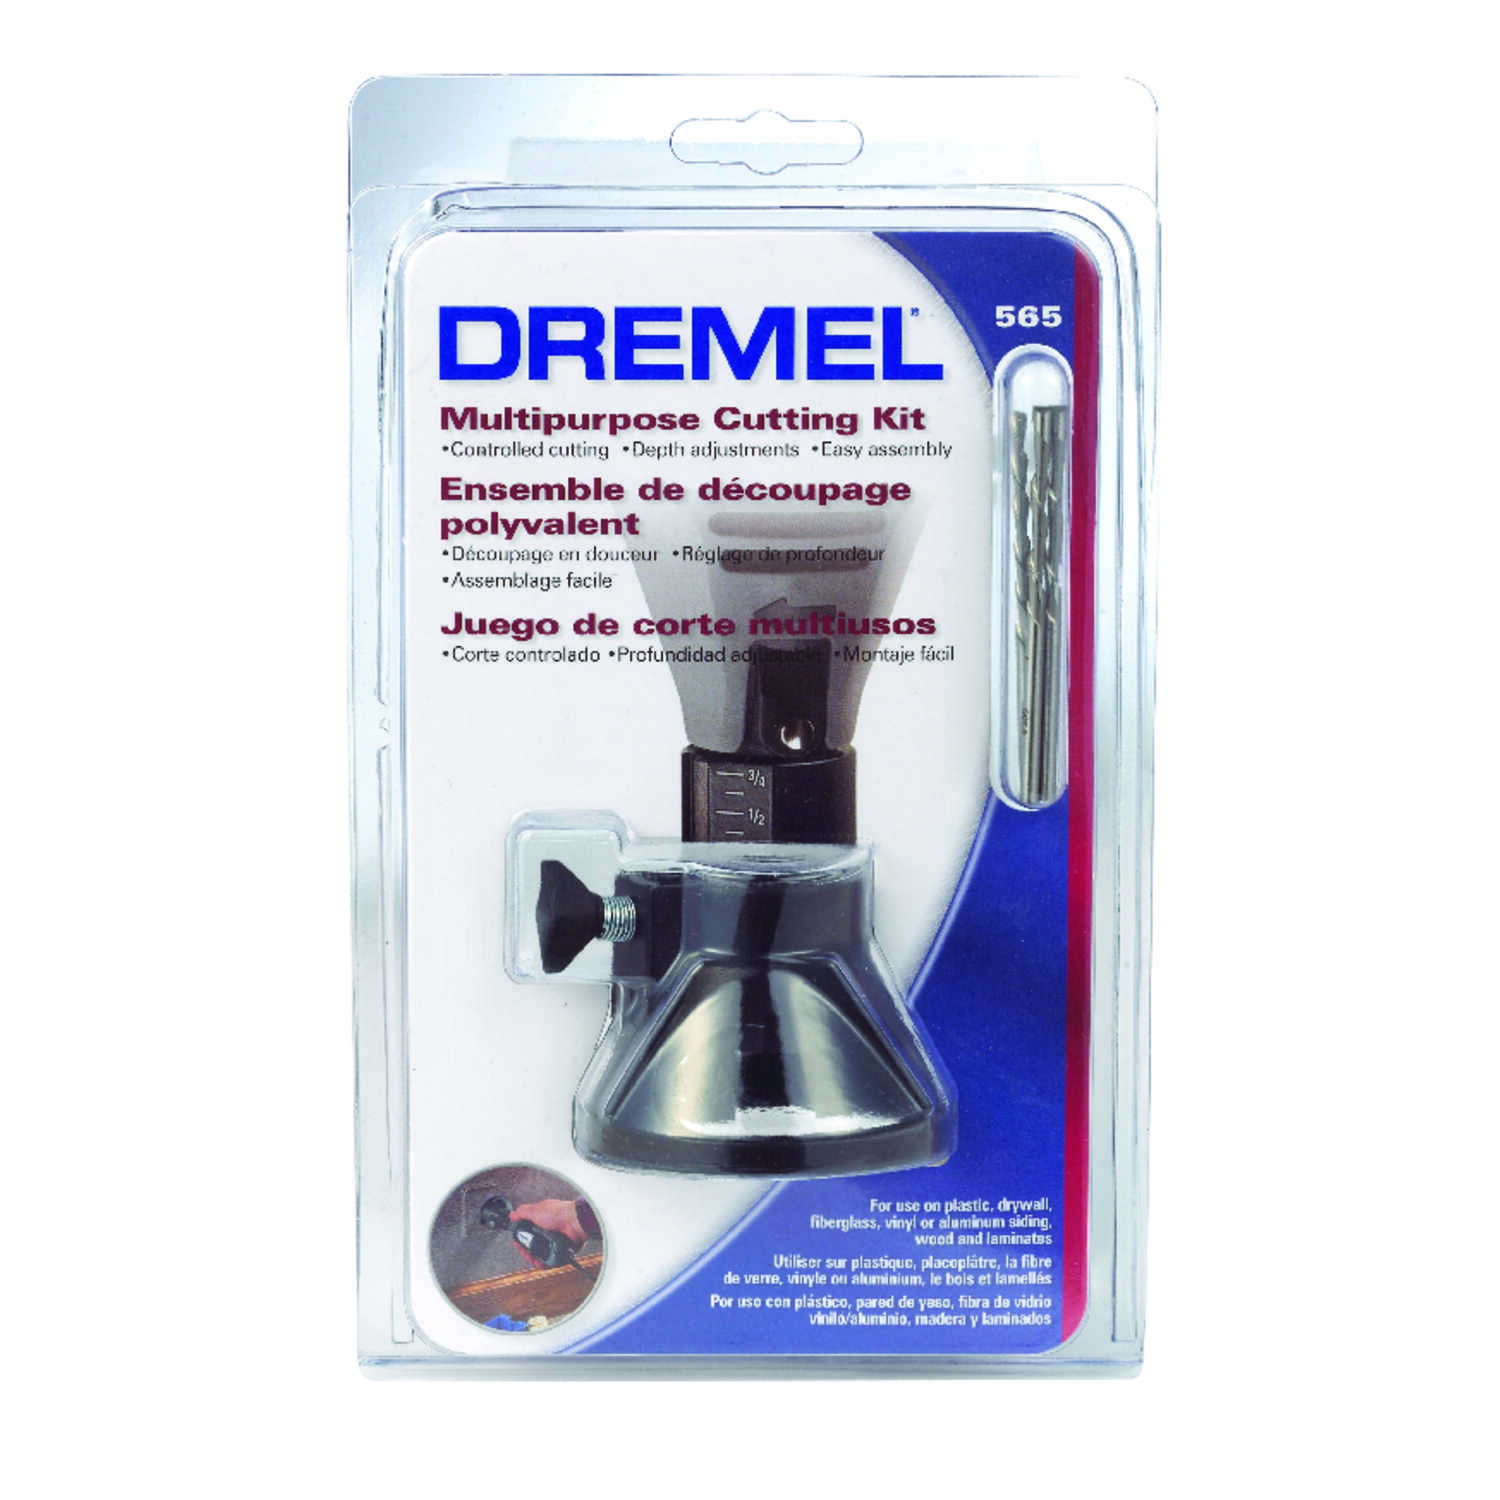 Dremel  4.2   x 6.65 in. L Plastic  Multi-Purpose Cutting Kit  4 pc.